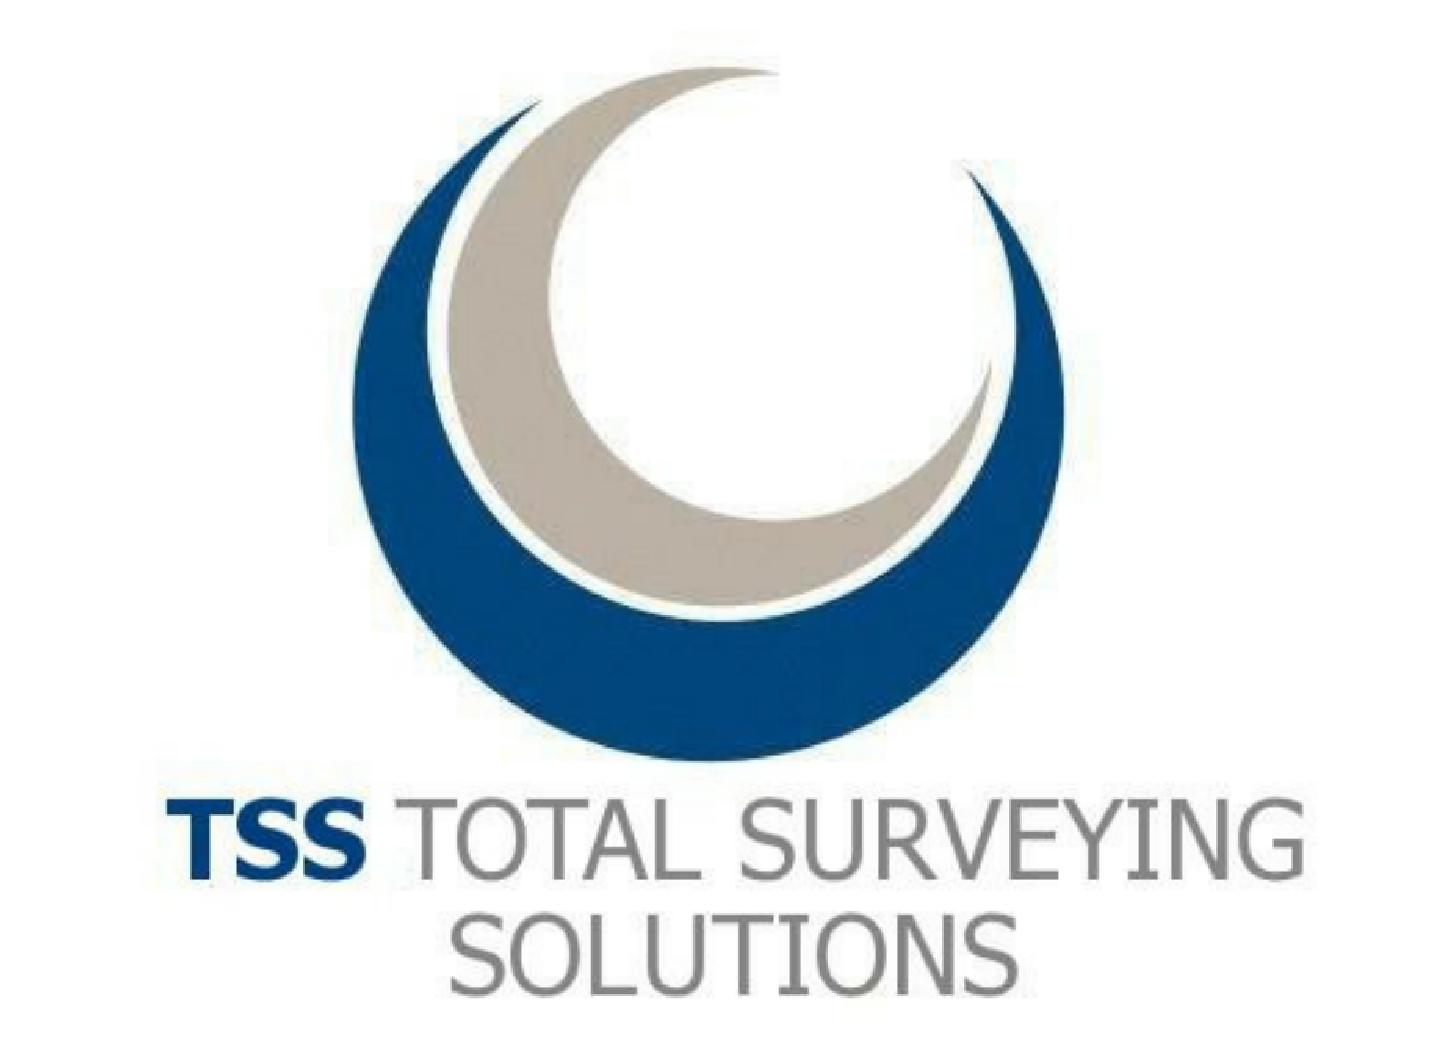 NEW TSS LOGO SQUARE.png